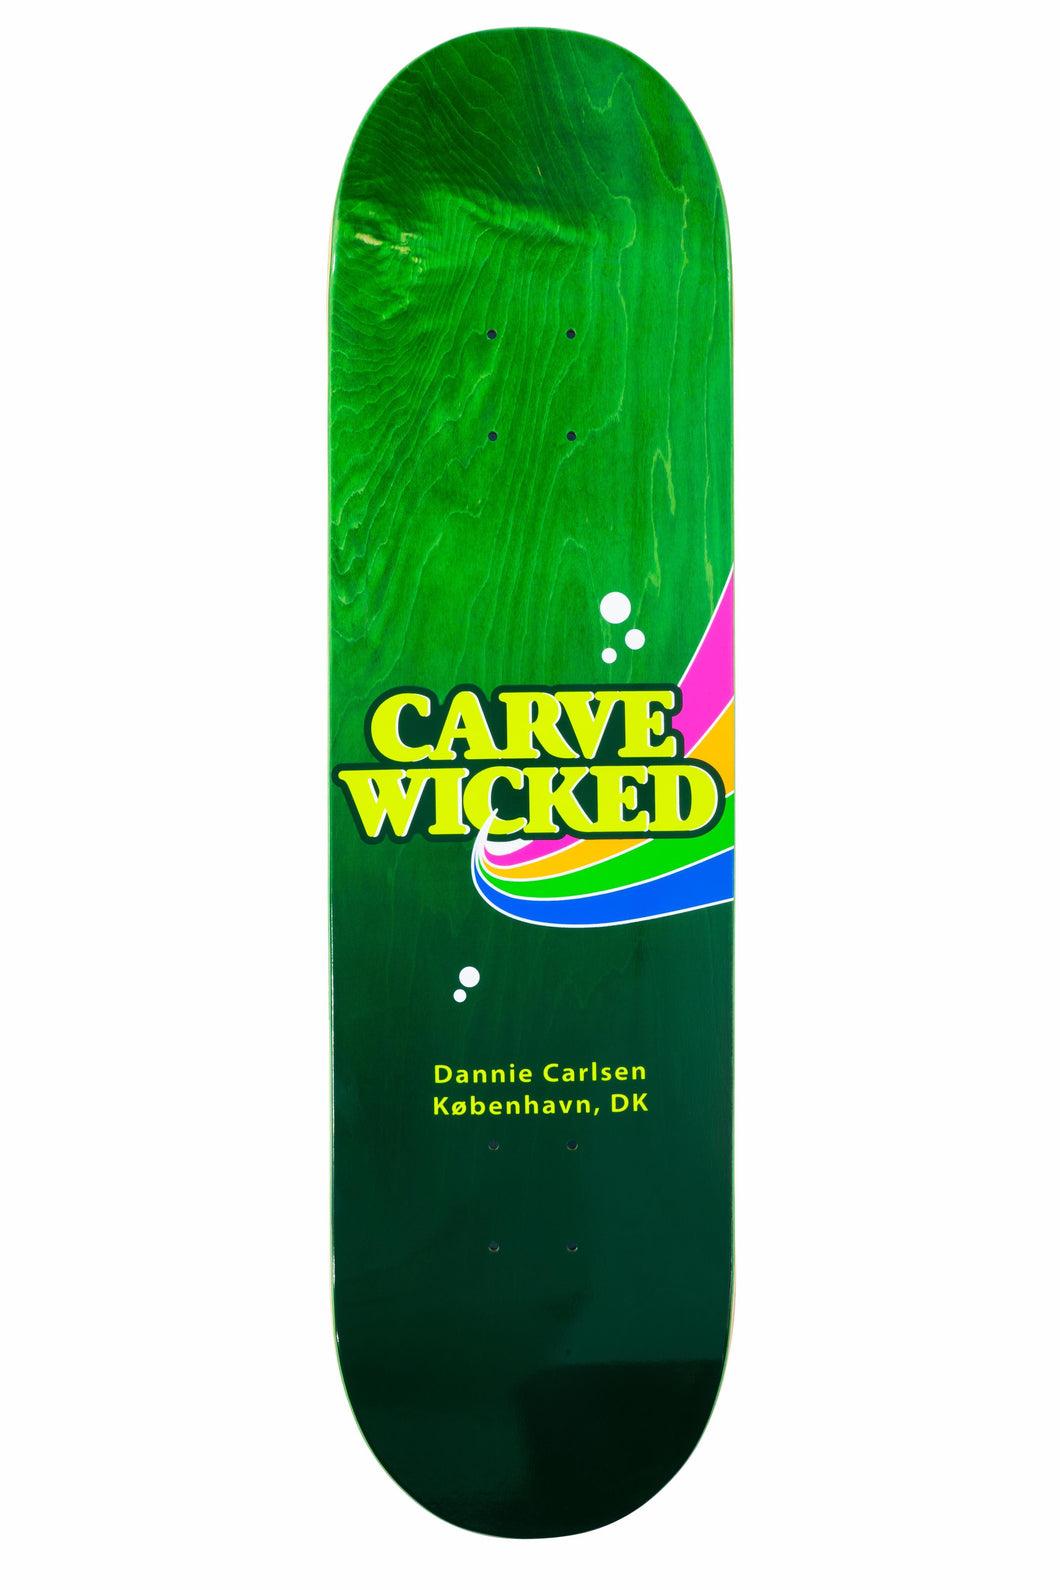 Carve Wicked: DANNIE PRO - Faxe Carlsen 8.5